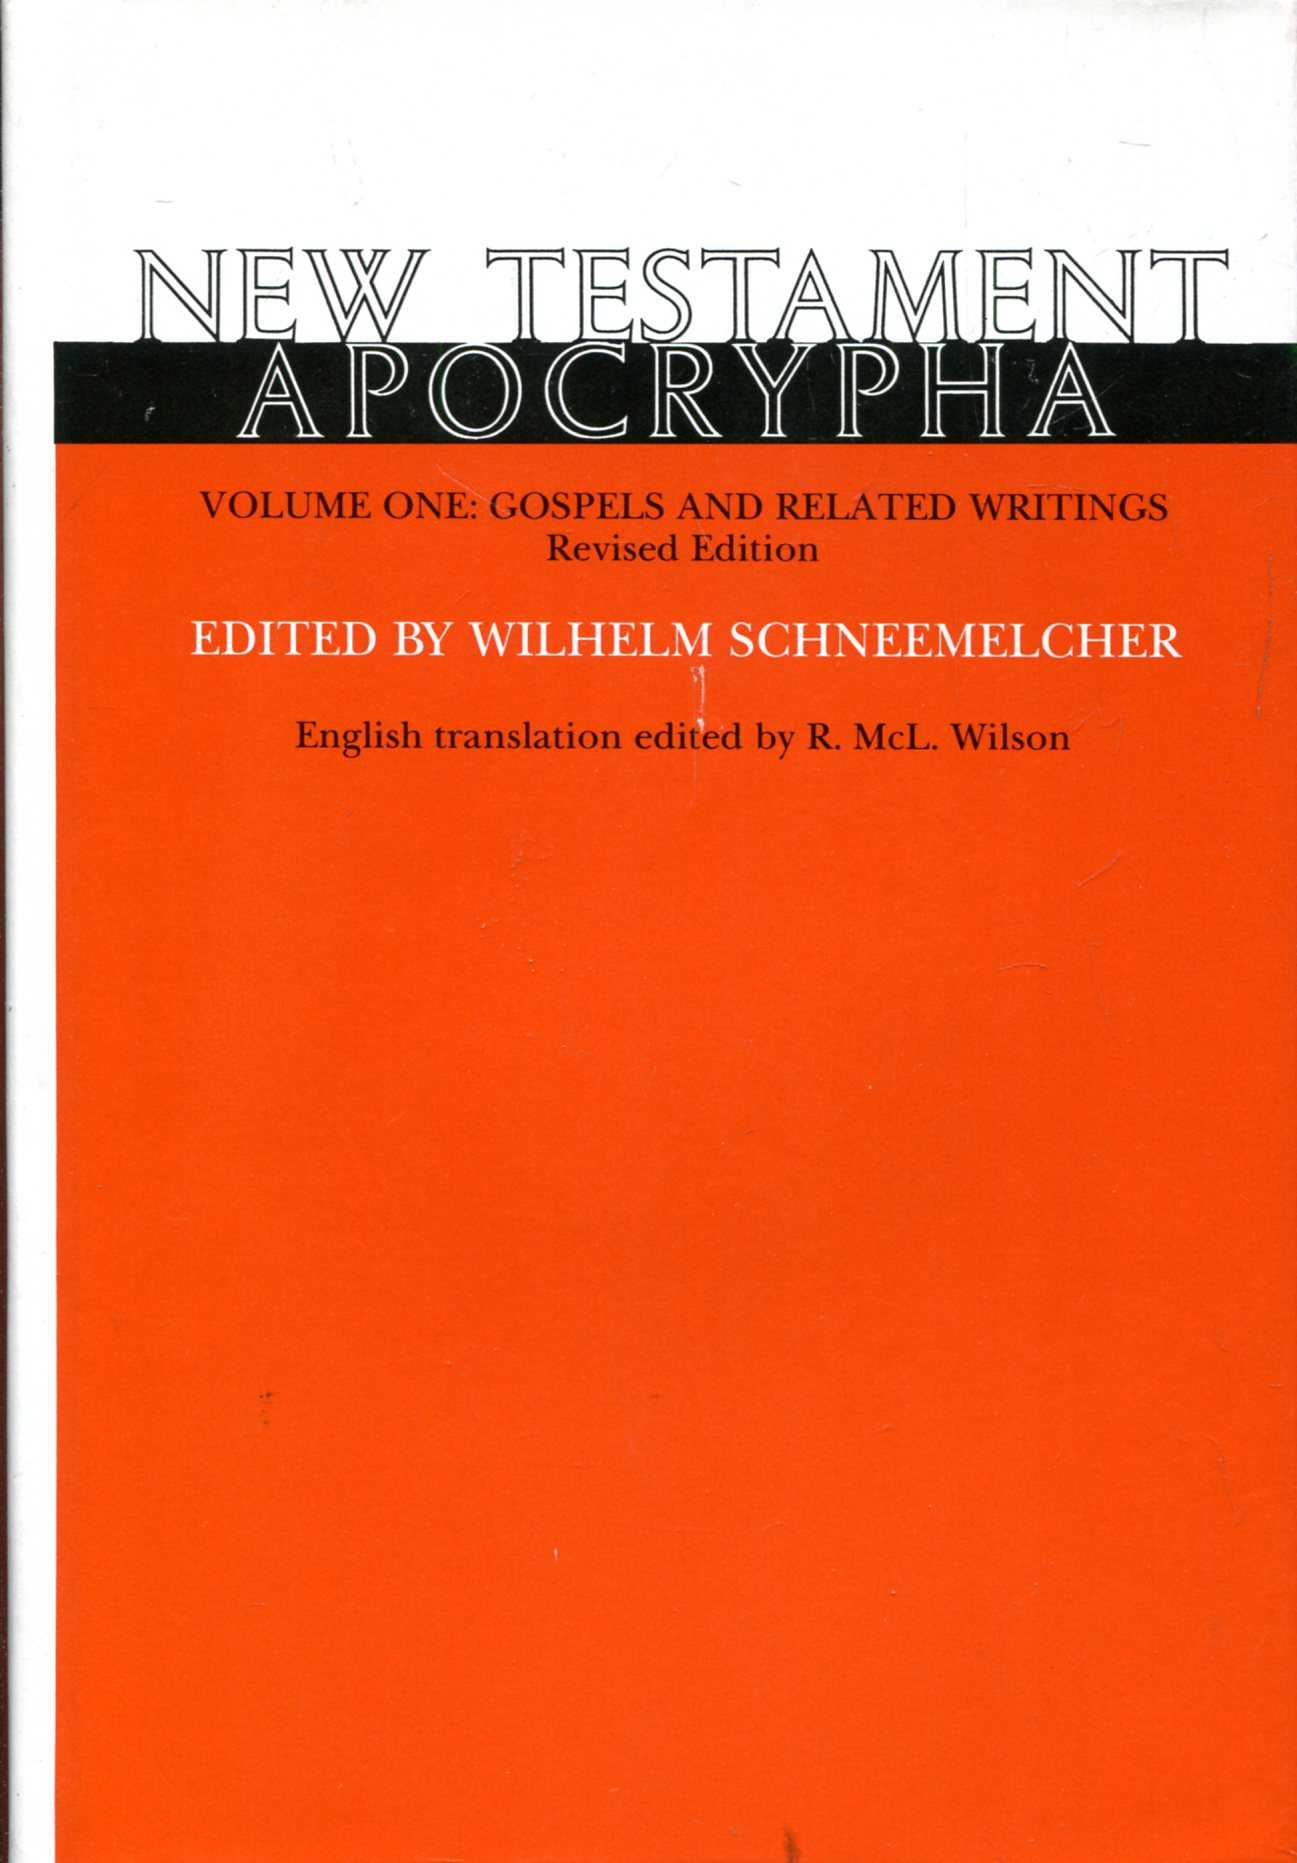 Image for New Testament Apocrypha Volume I - Gospels and Related Writings